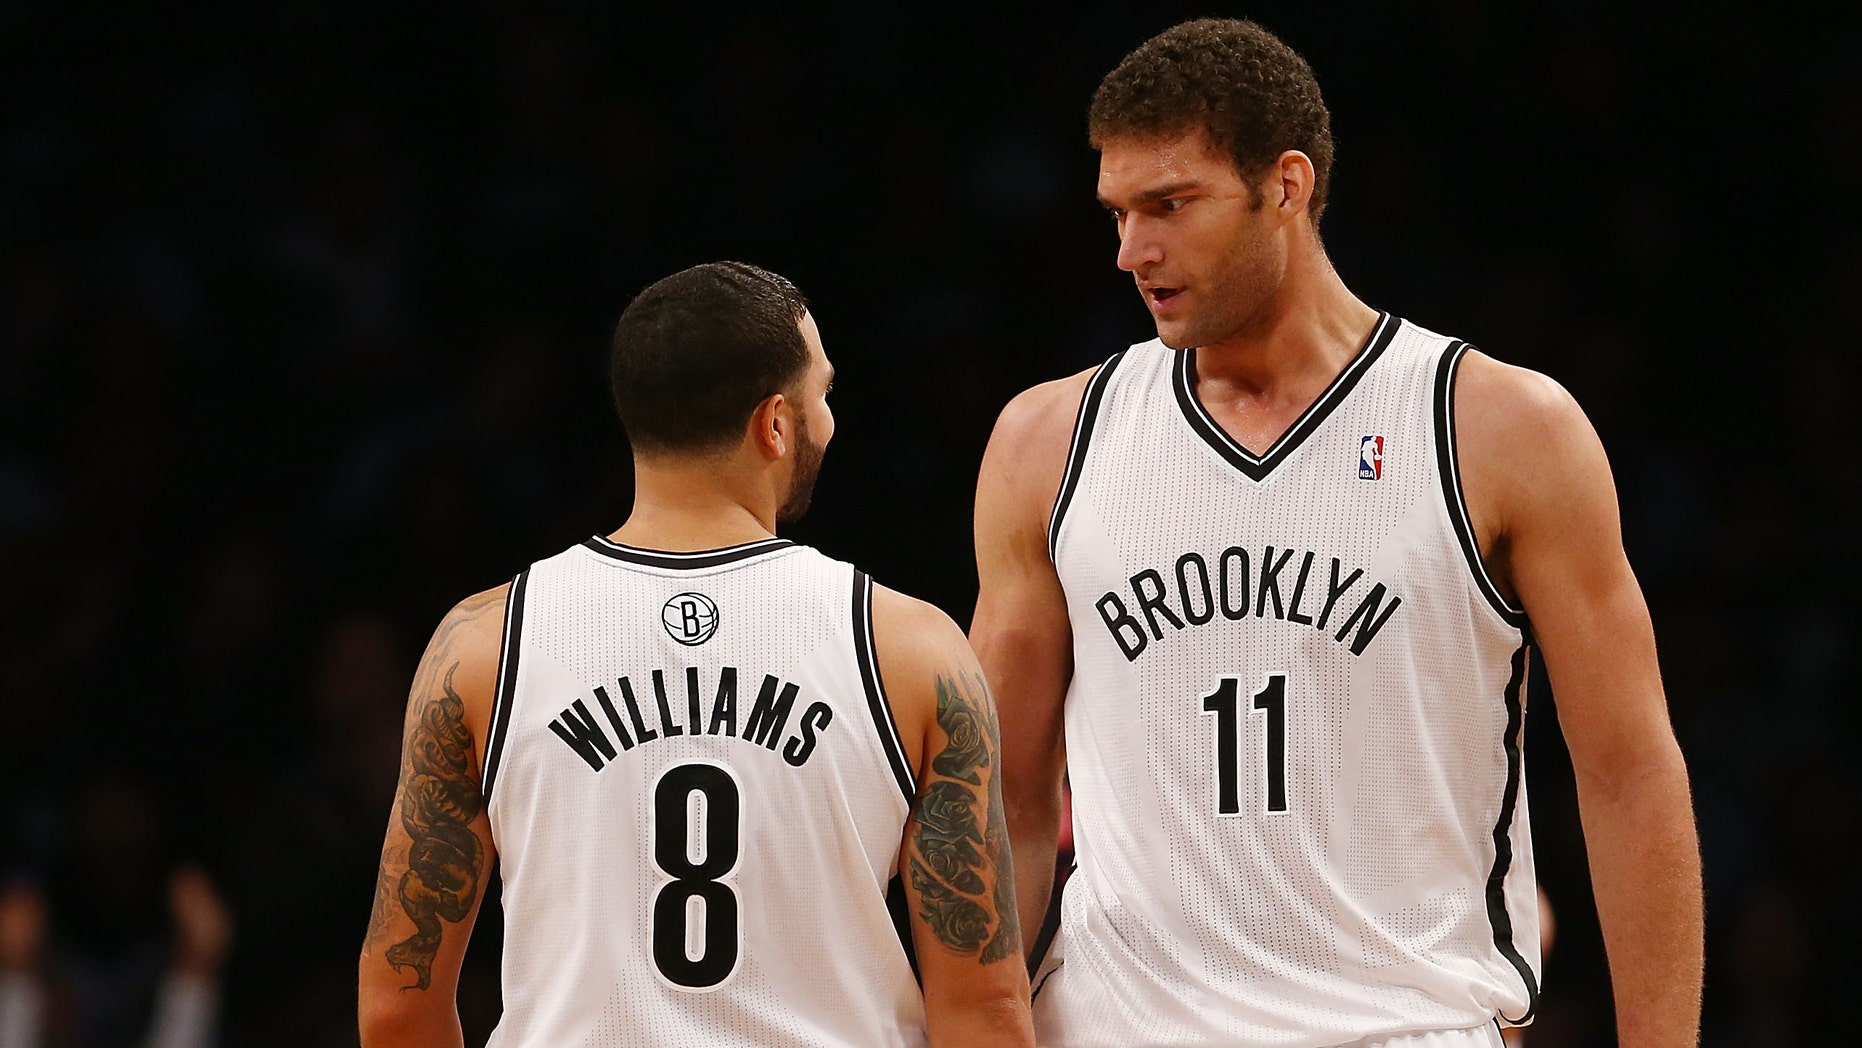 NEW YORK, NY - NOVEMBER 03: Brook Lopez #11 of the Brooklyn Nets speaks with teammate Deron Williams #8 during a game against the Toronto Raptors at the Barclays Center on November 3, 2012 in the Brooklyn borough of New York City. NOTE TO USER: User expressly acknowledges and agrees that, by downloading and/or using this photograph, user is consenting to the terms and conditions of the Getty Images License Agreement.  (Photo by Alex Trautwig/Getty Images)